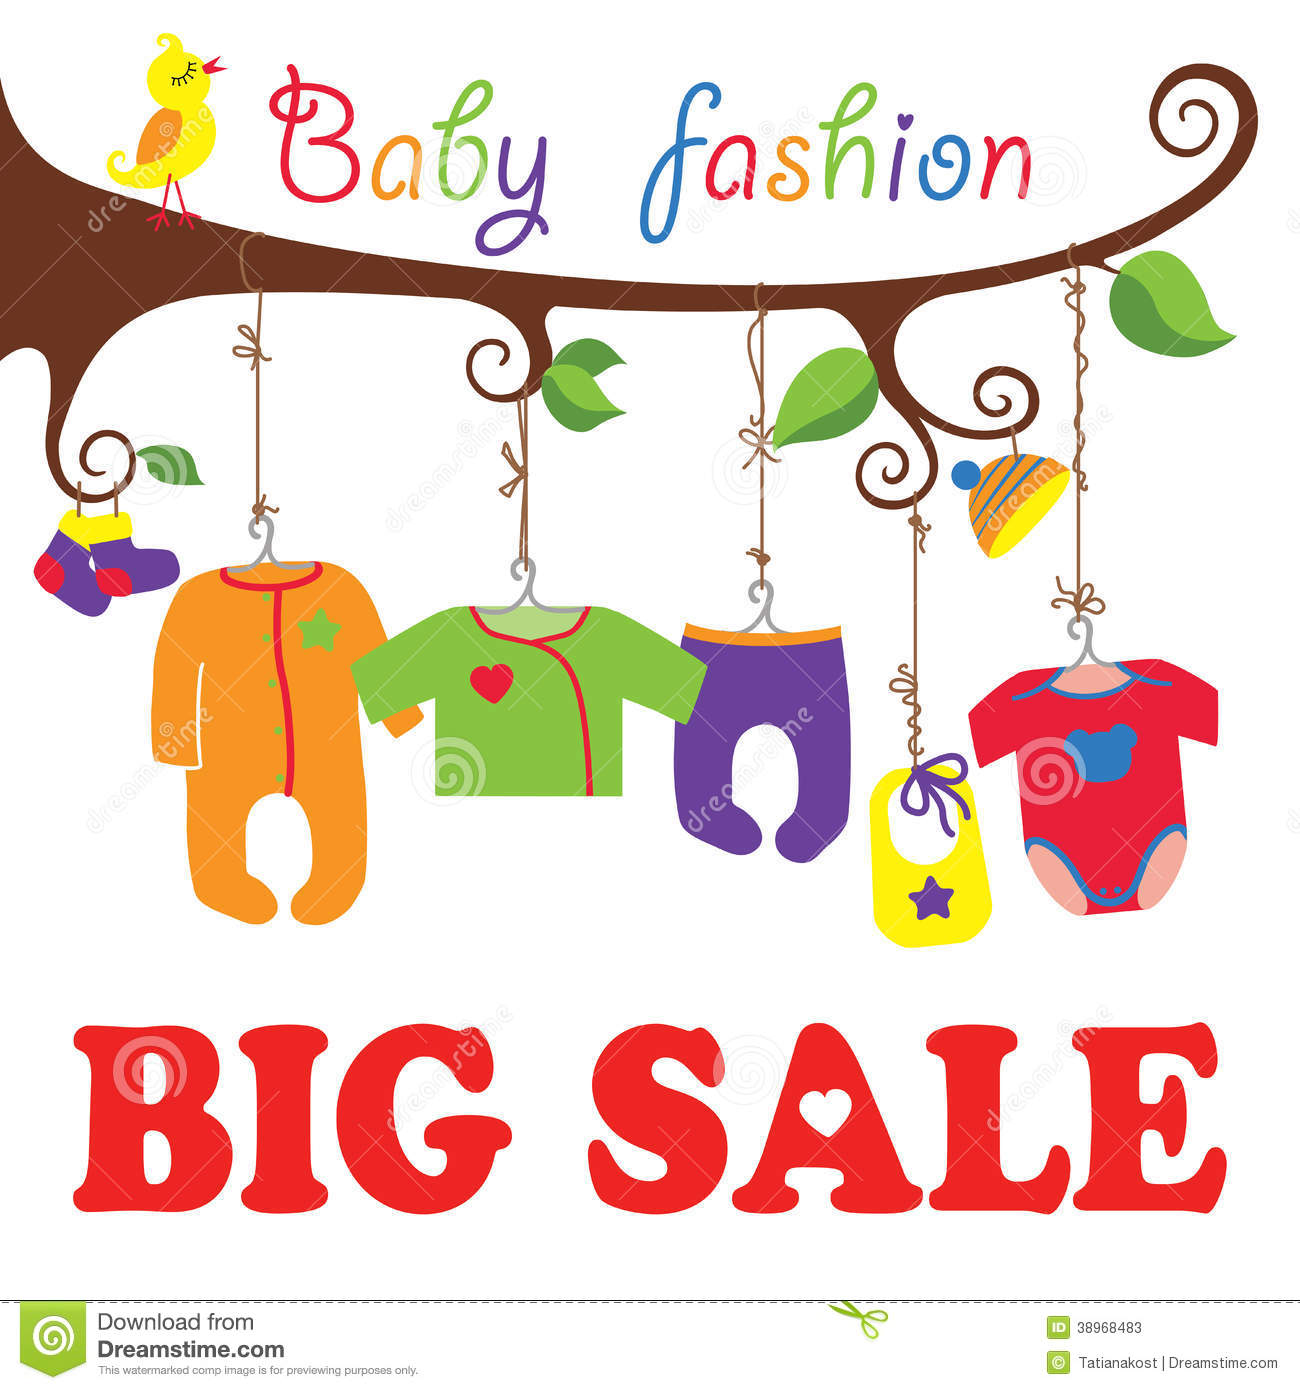 52433b97b87eb Colorful clothes for newborn baby hanging on the rope in the tree branches.  Baby born clothes hanging on the tree.Big sale for Baby fashion.